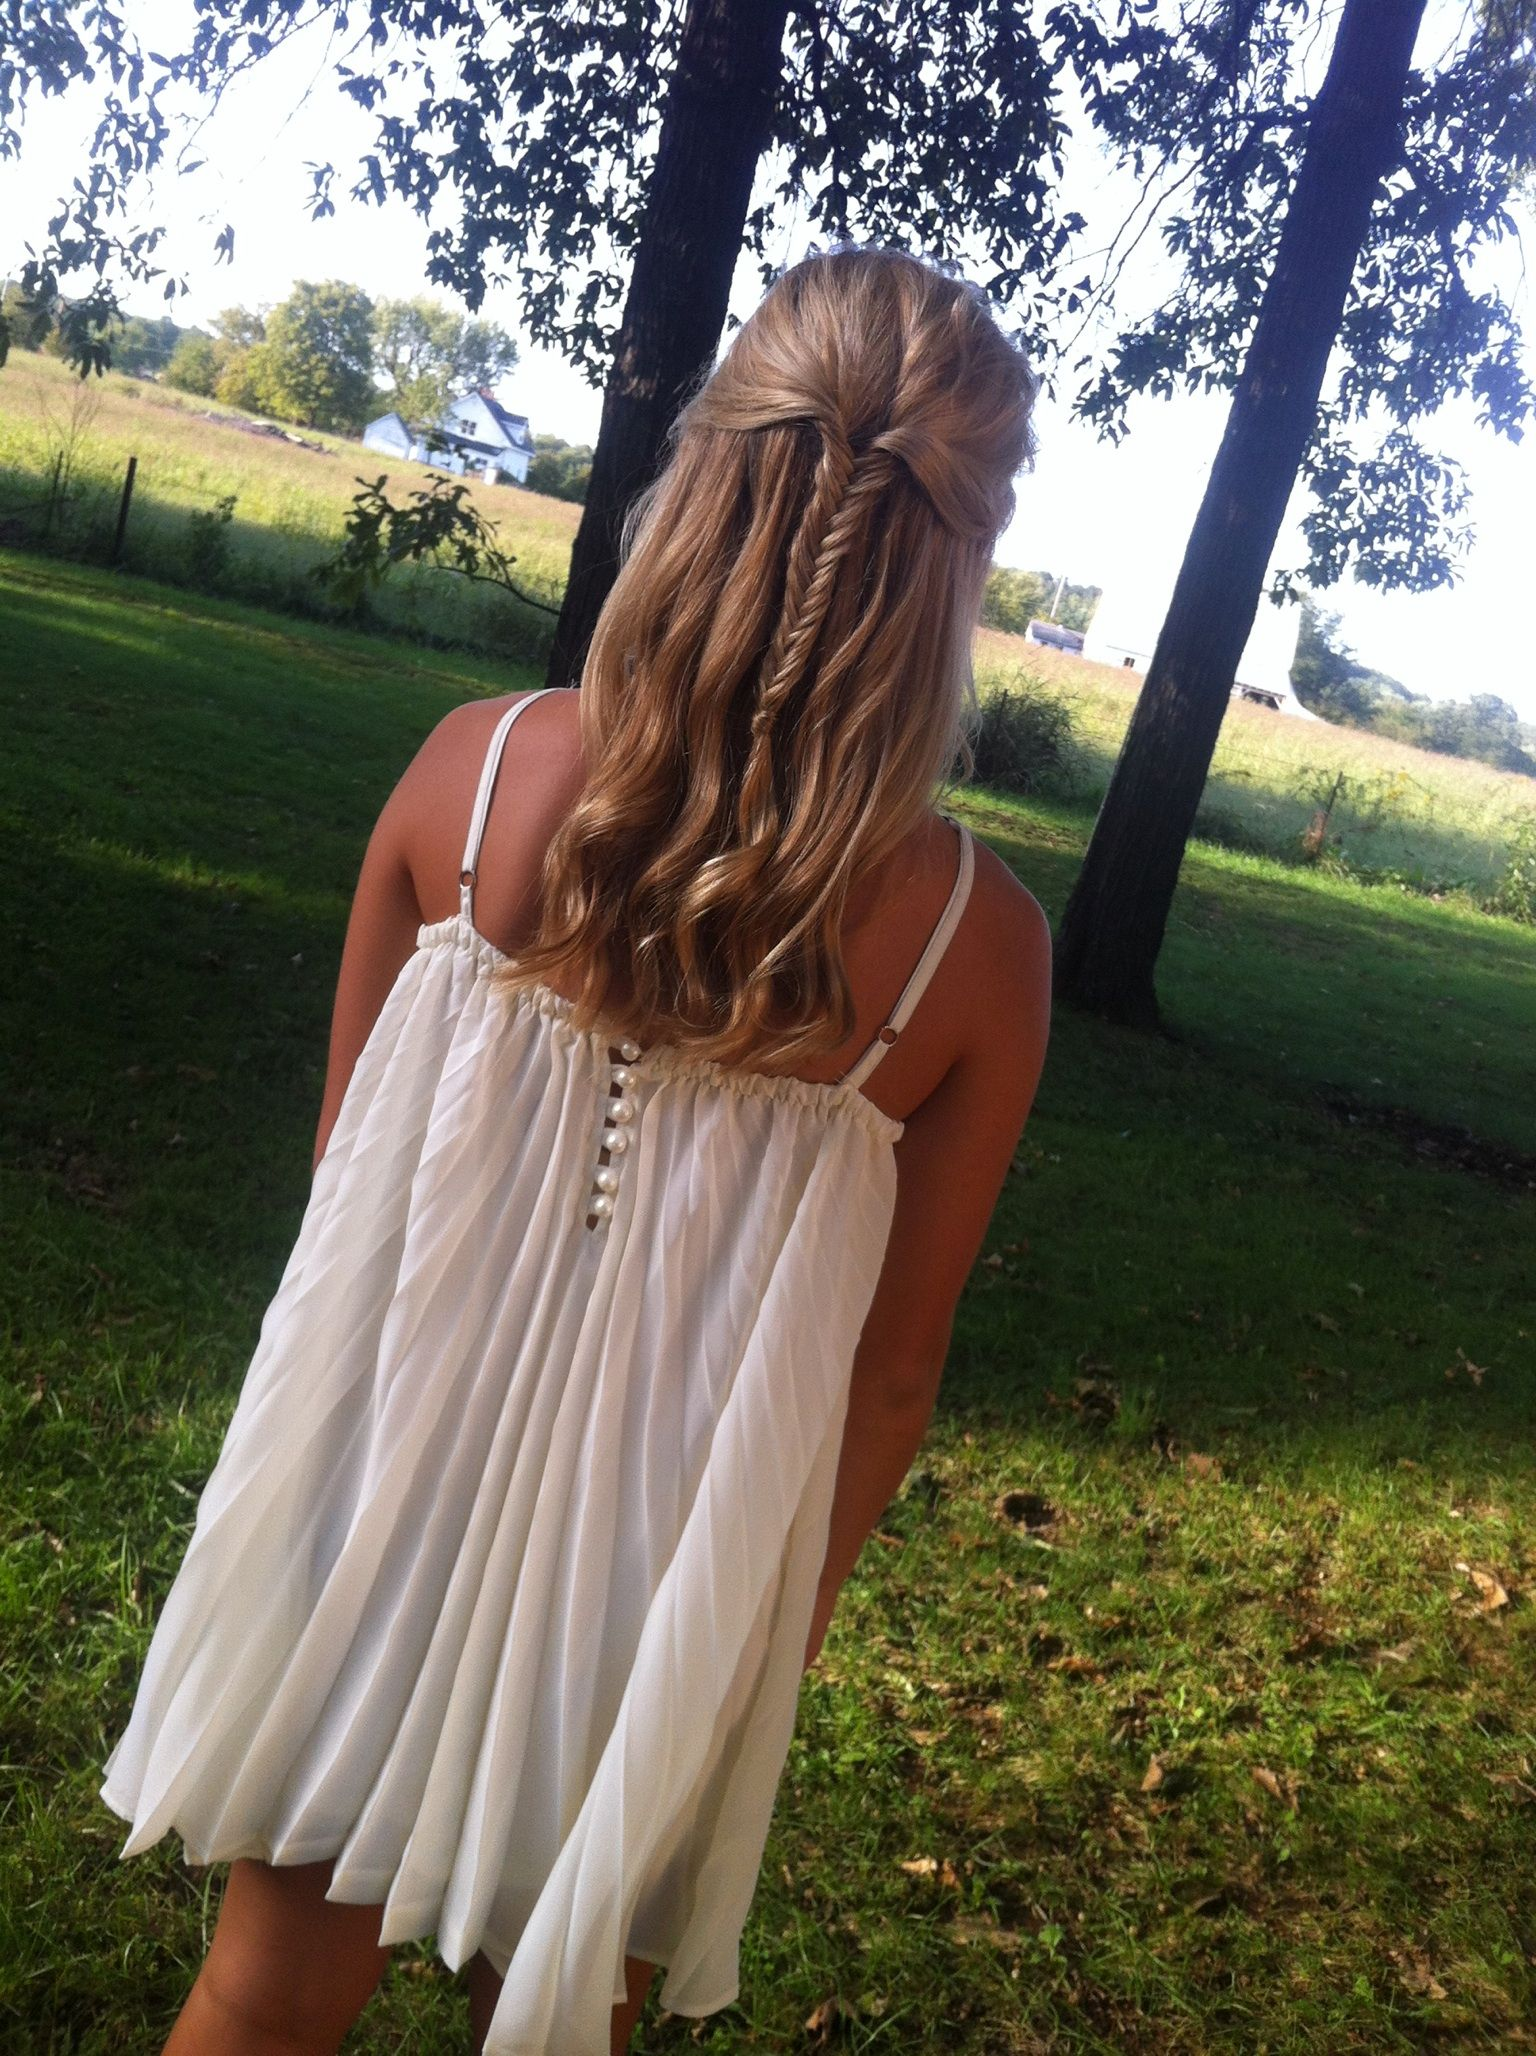 Homecoming hair summertime pinterest hair hair beauty and